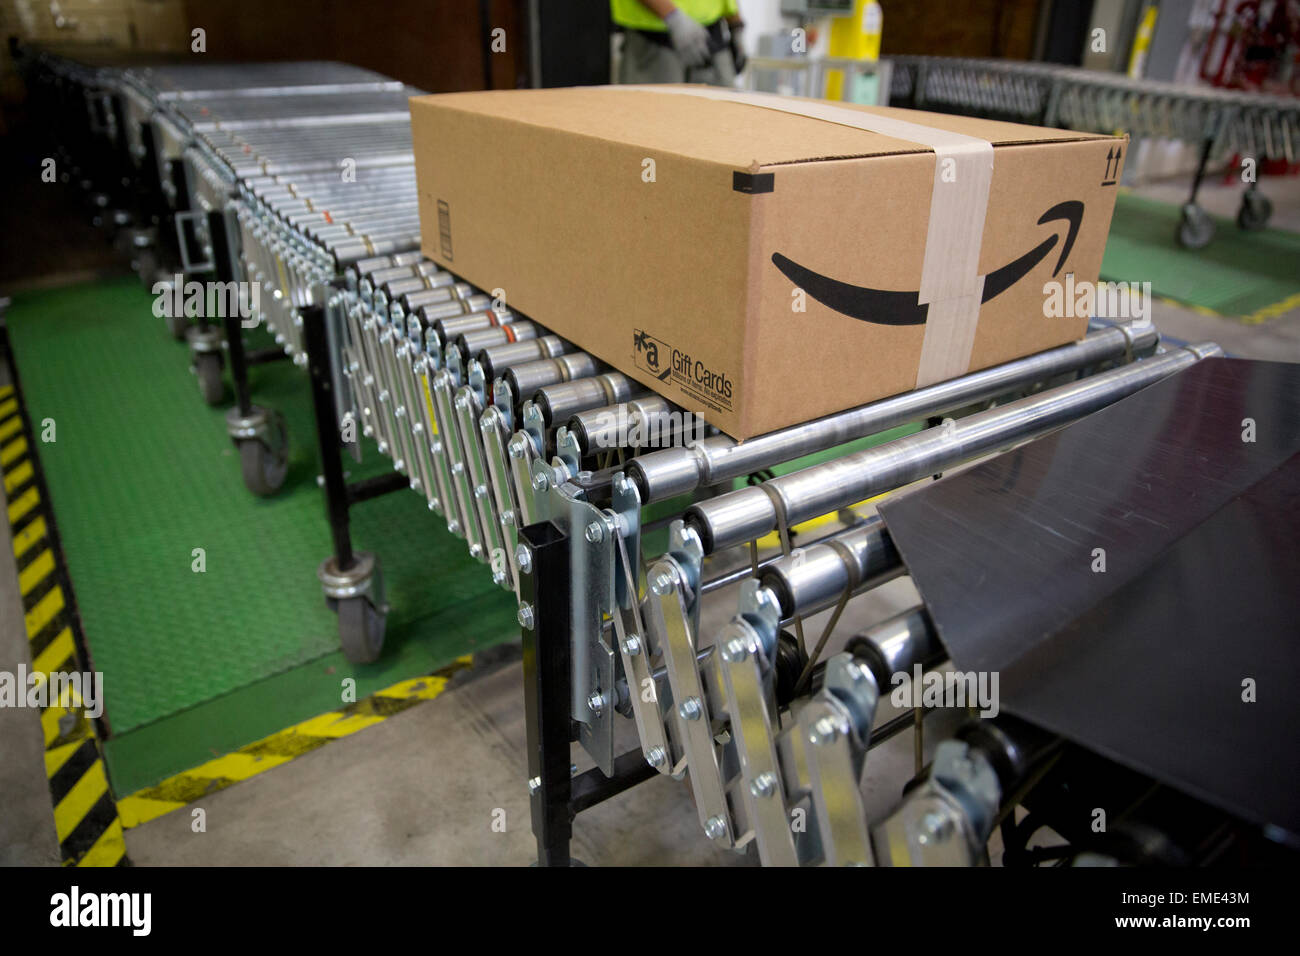 Amazon shipping center uses  advance tracking system to package orders and place into large tractor trailers for - Stock Image